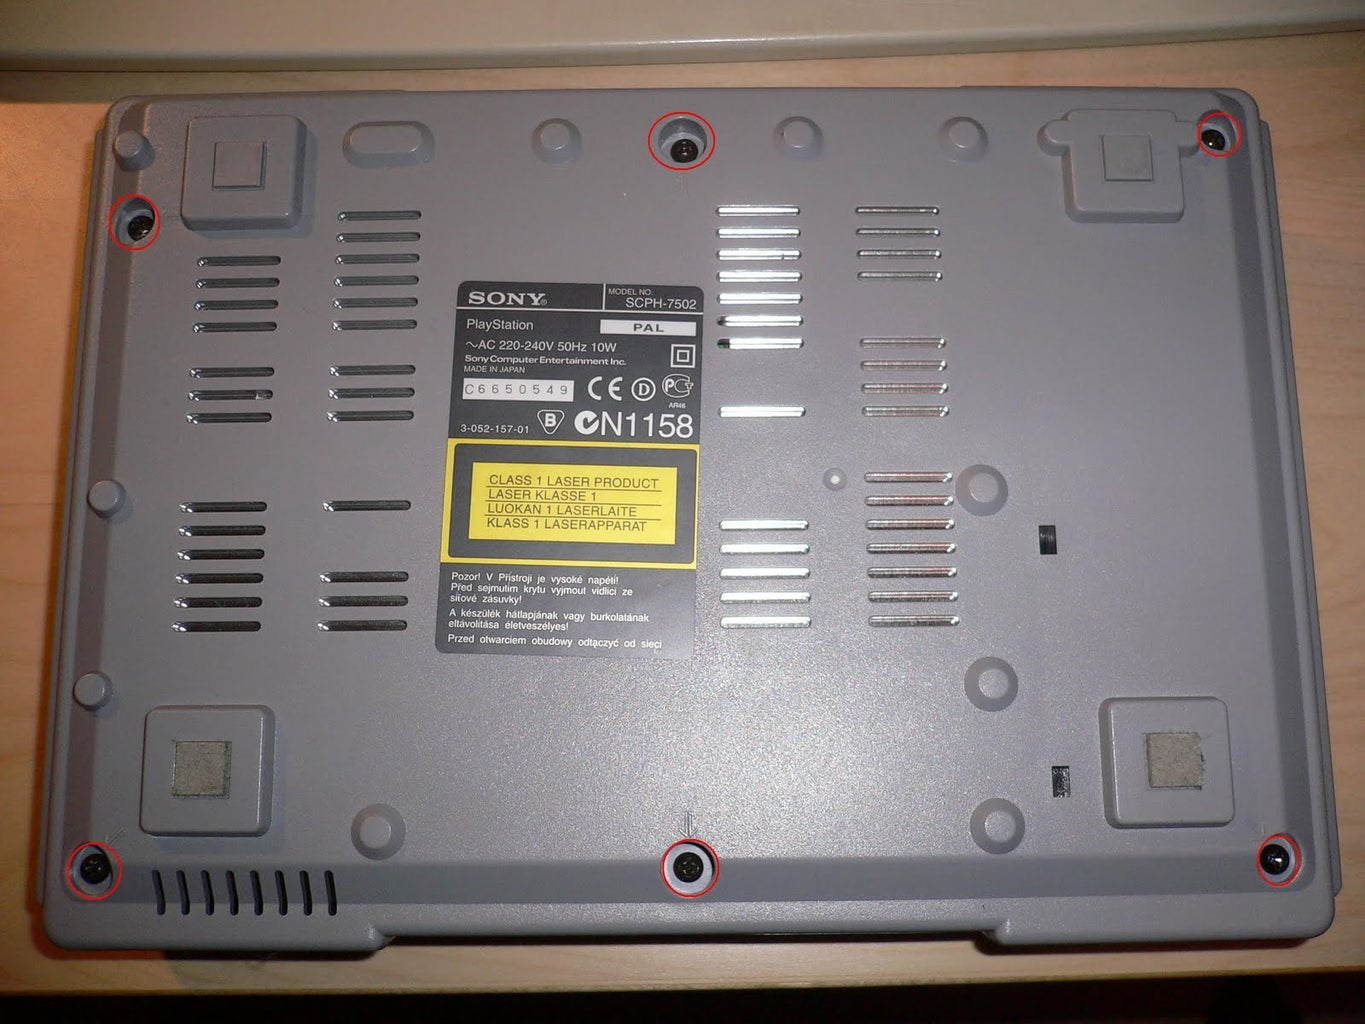 Taking Apart the PlayStation